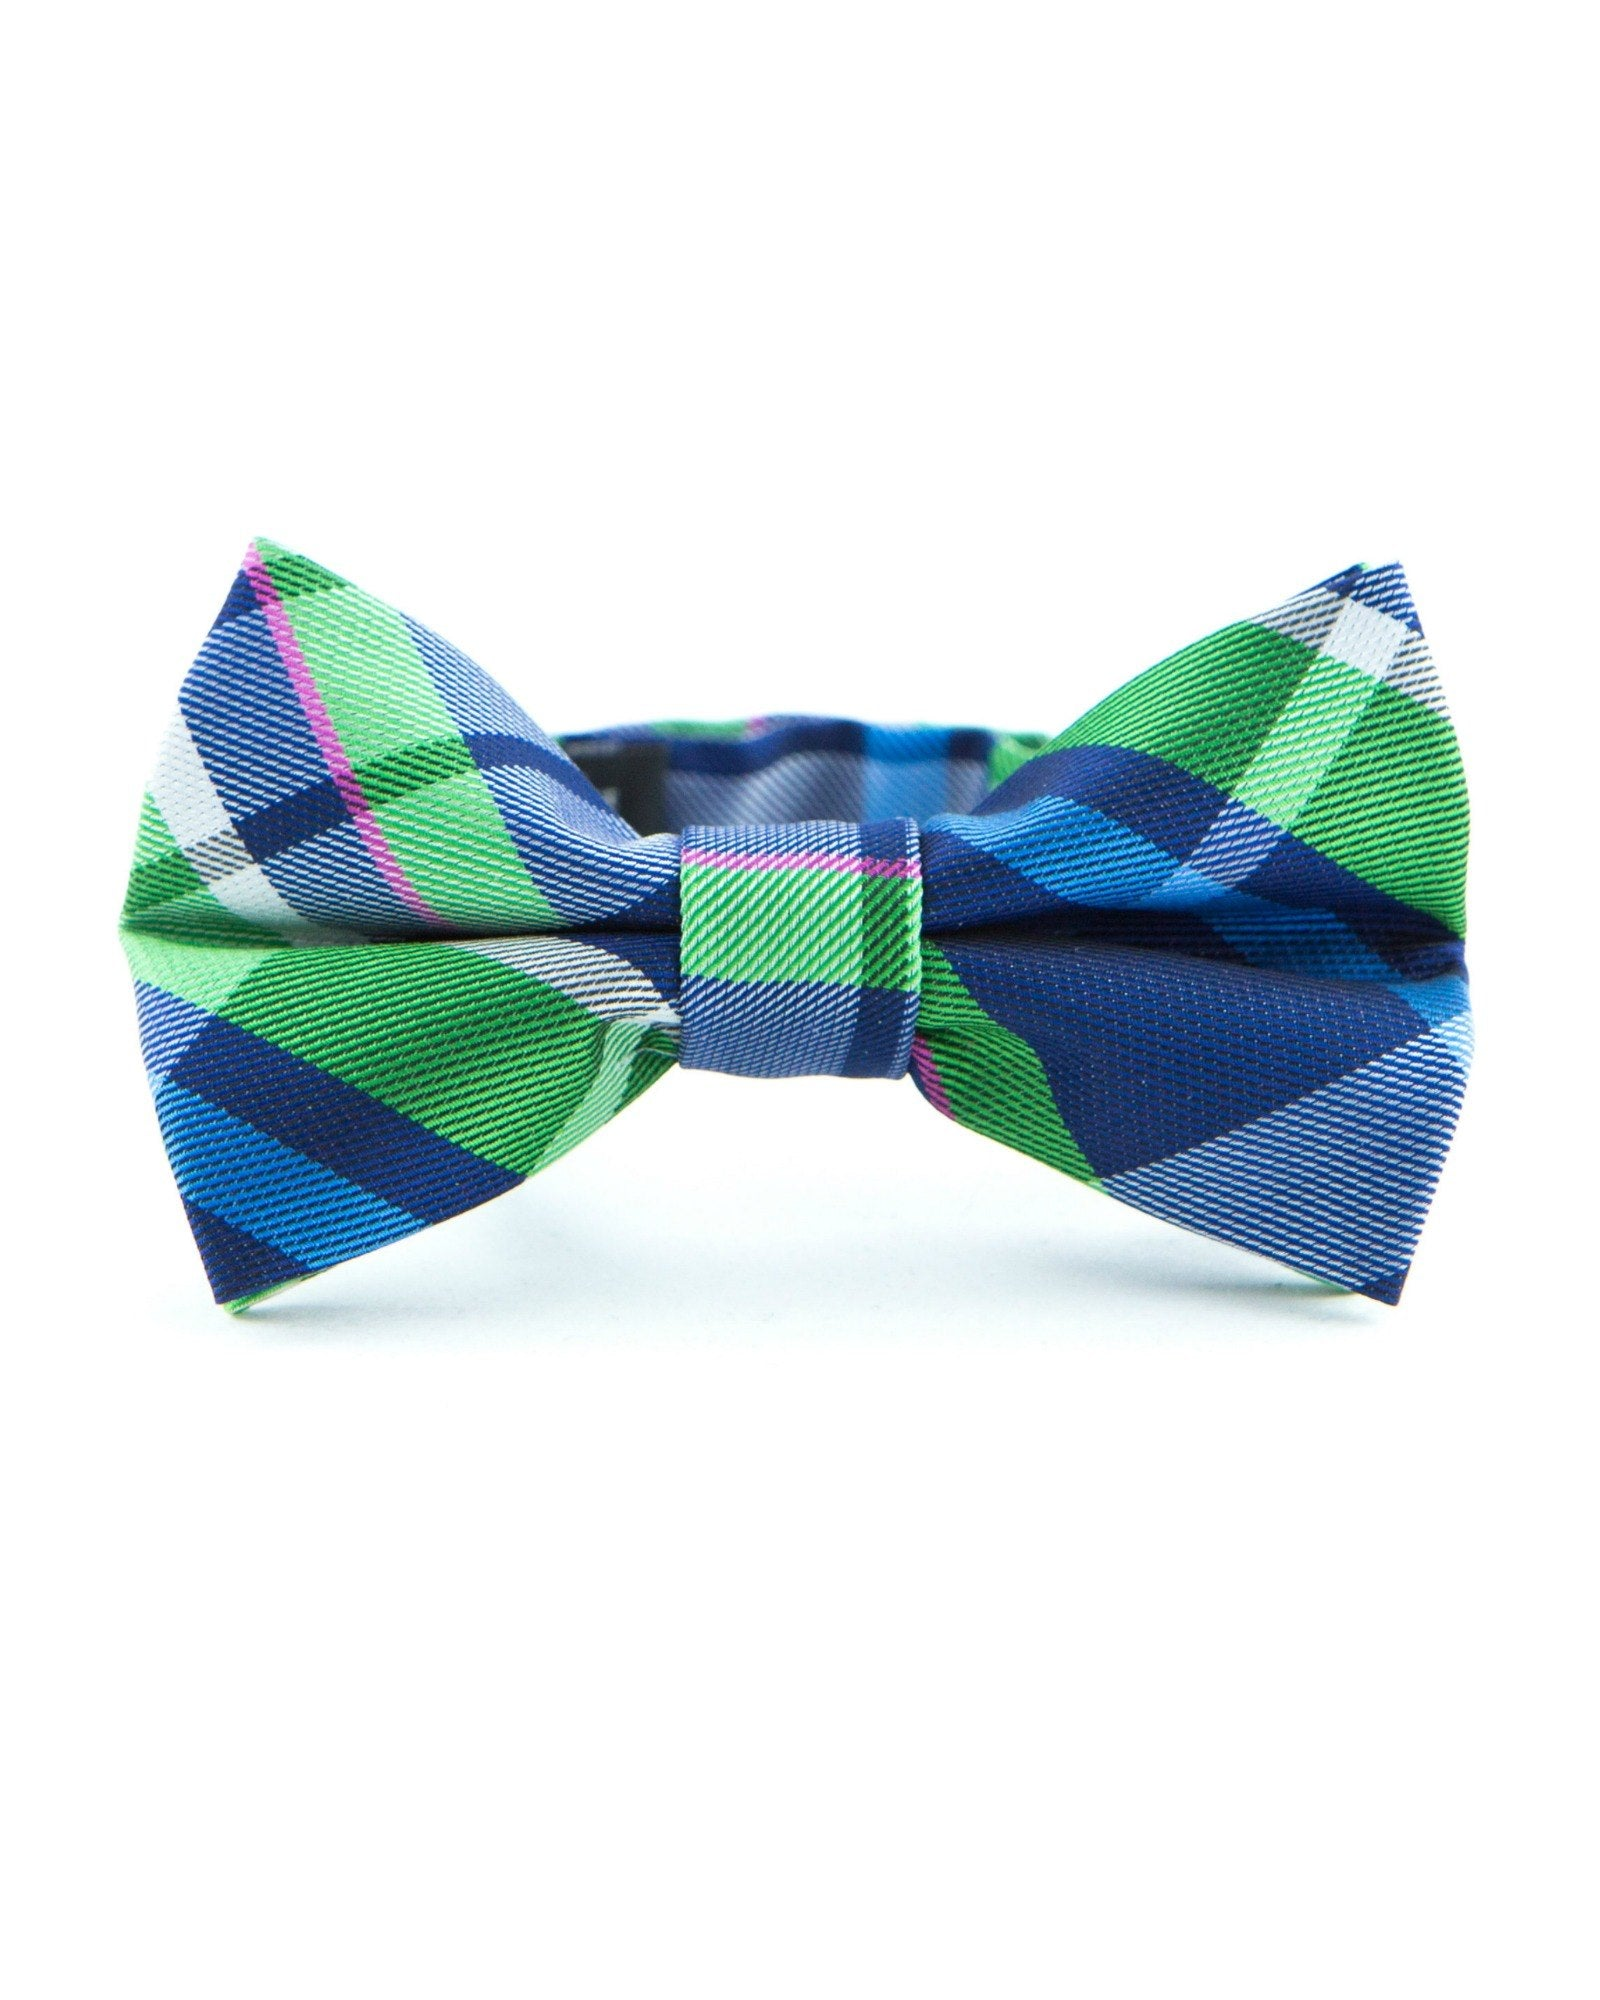 navy-and-green-plaid-bow.jpg